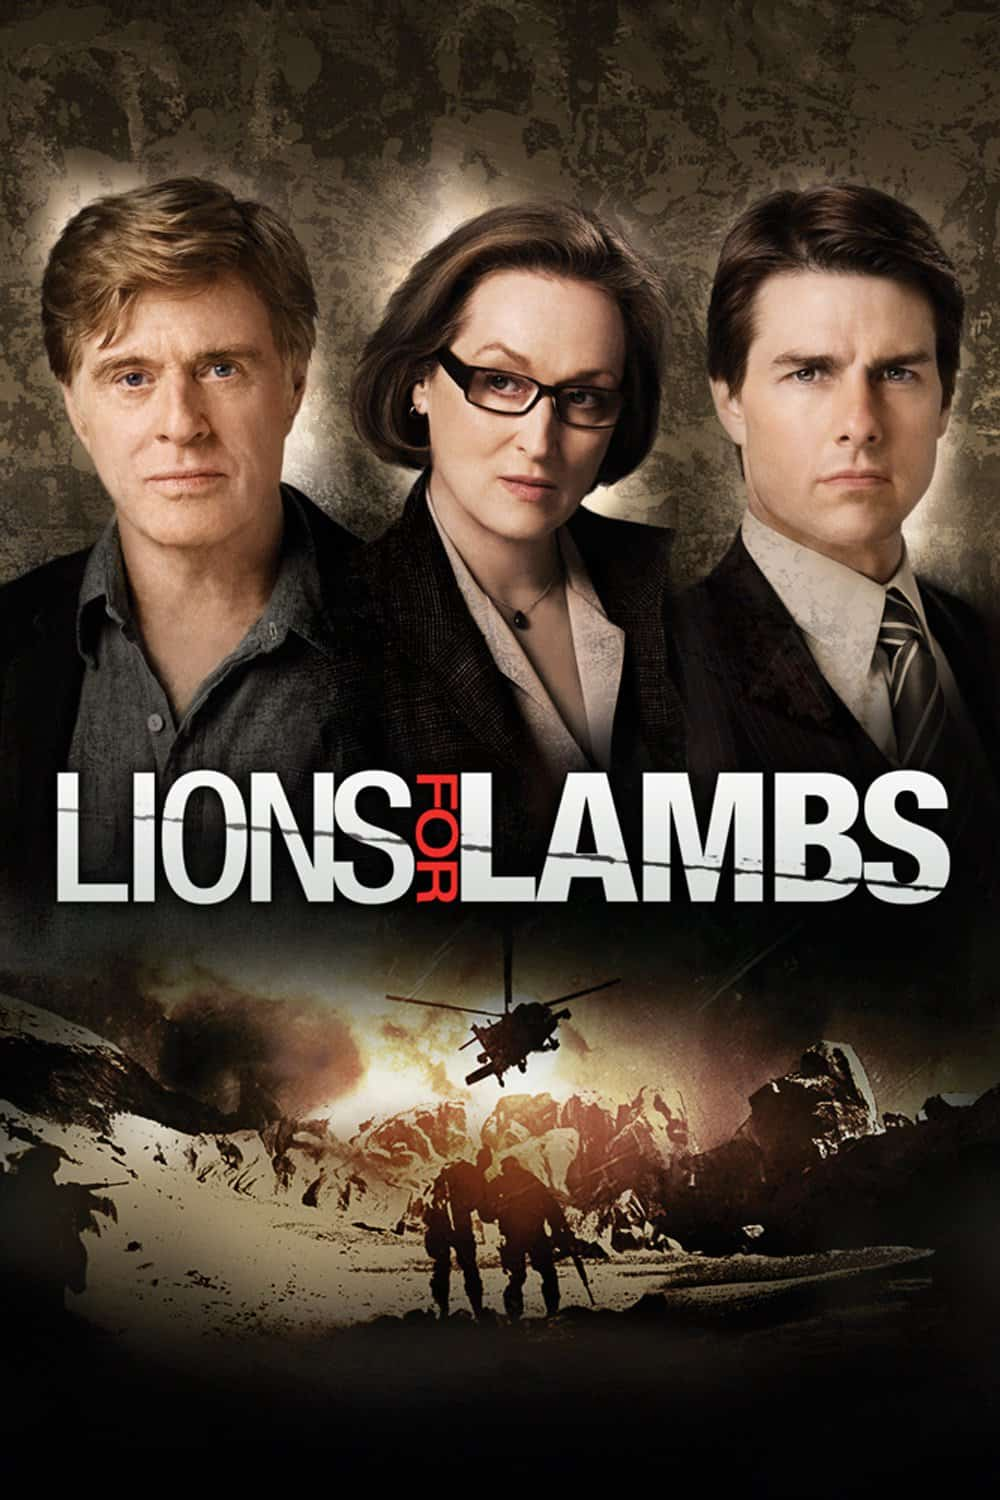 Lions for Lambs, 2007